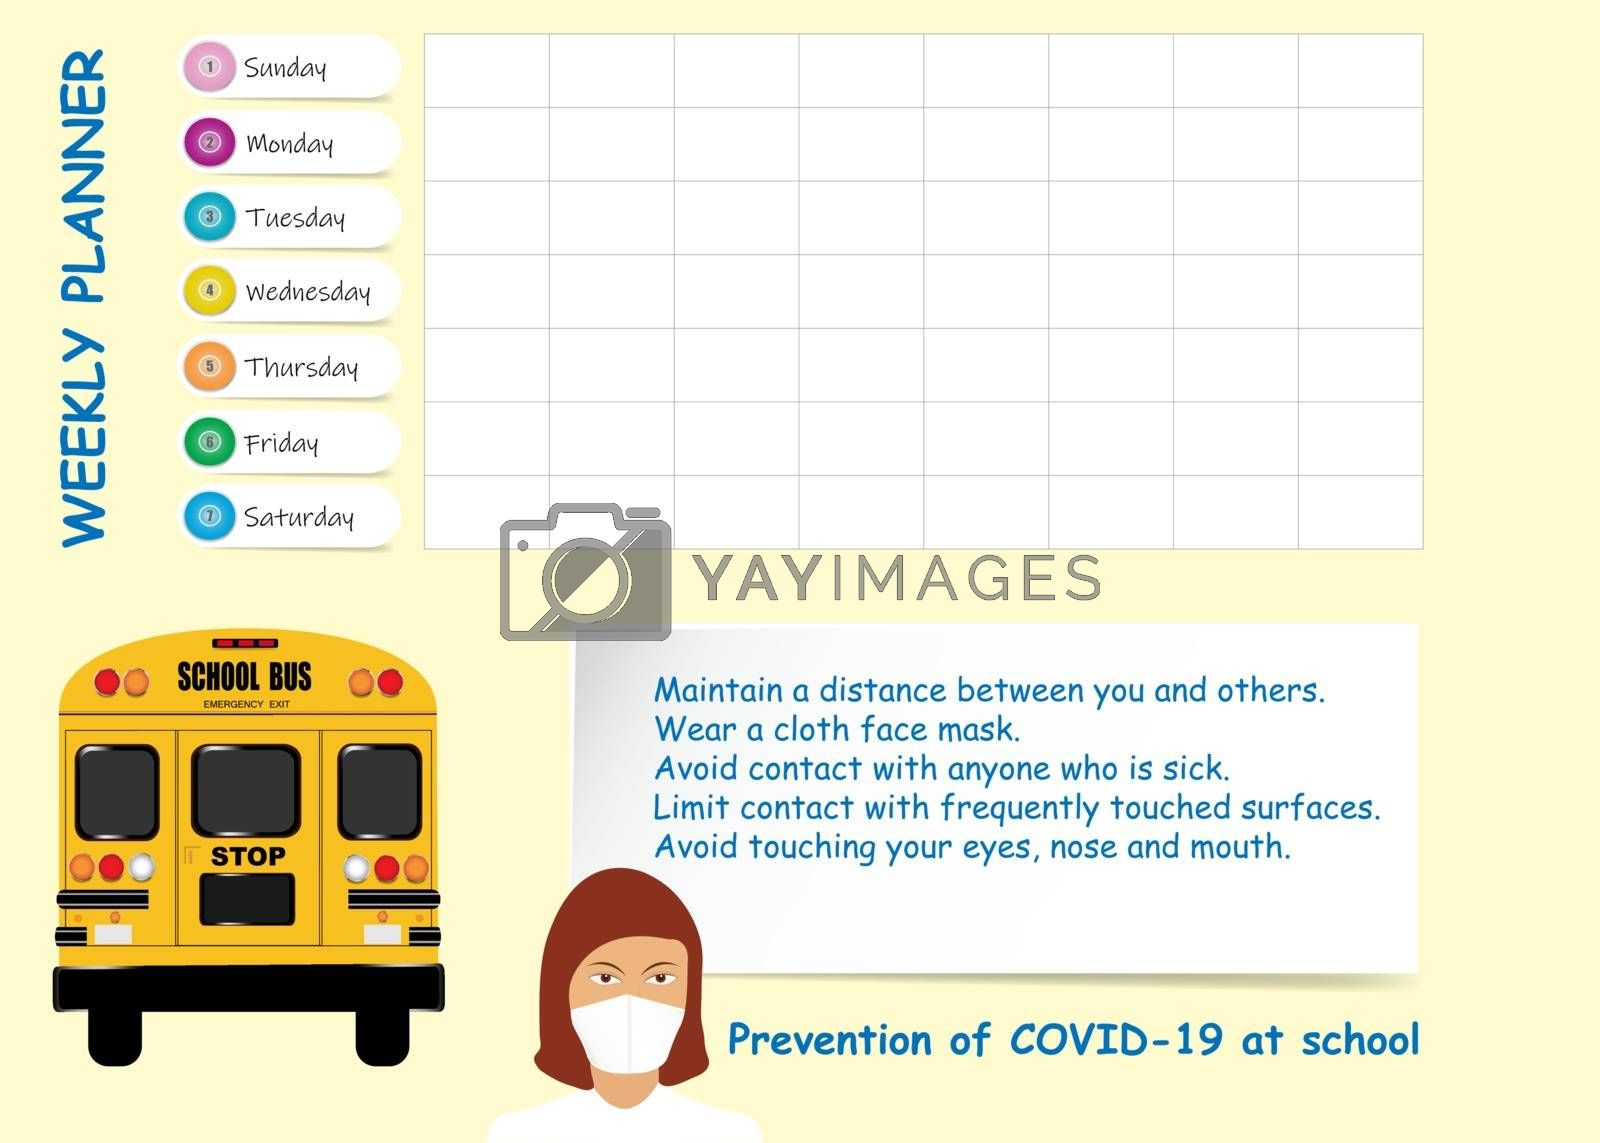 School weekly planner with travel safety instructions for covid-19 prevention. Showing school bus, instructions and doctor woman.